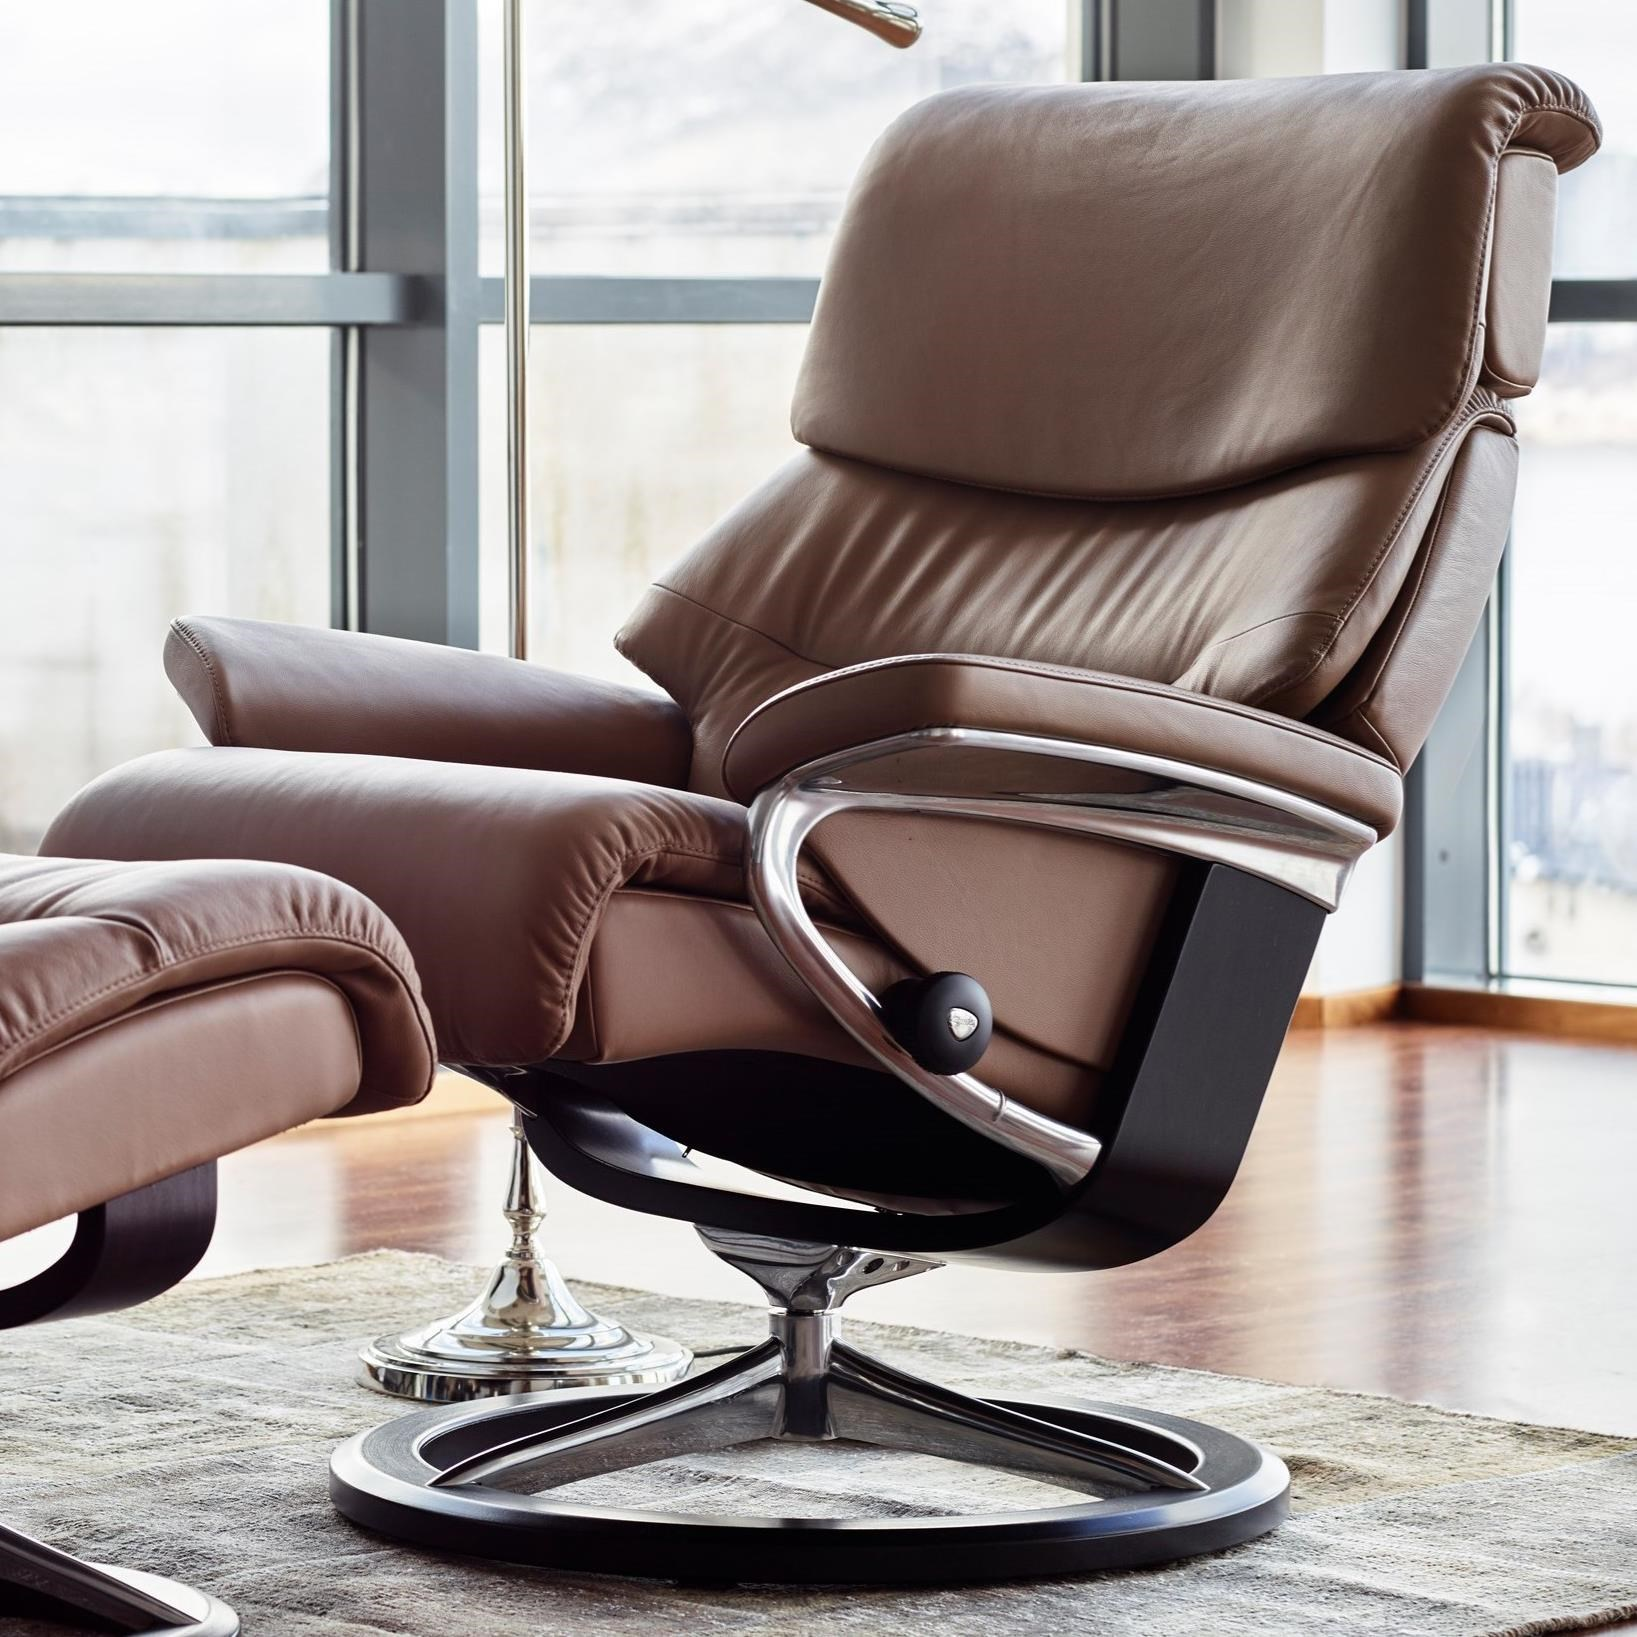 Stresless Capri Large Reclining Chair With Signature Base By Stressless At Dunk Bright Furniture